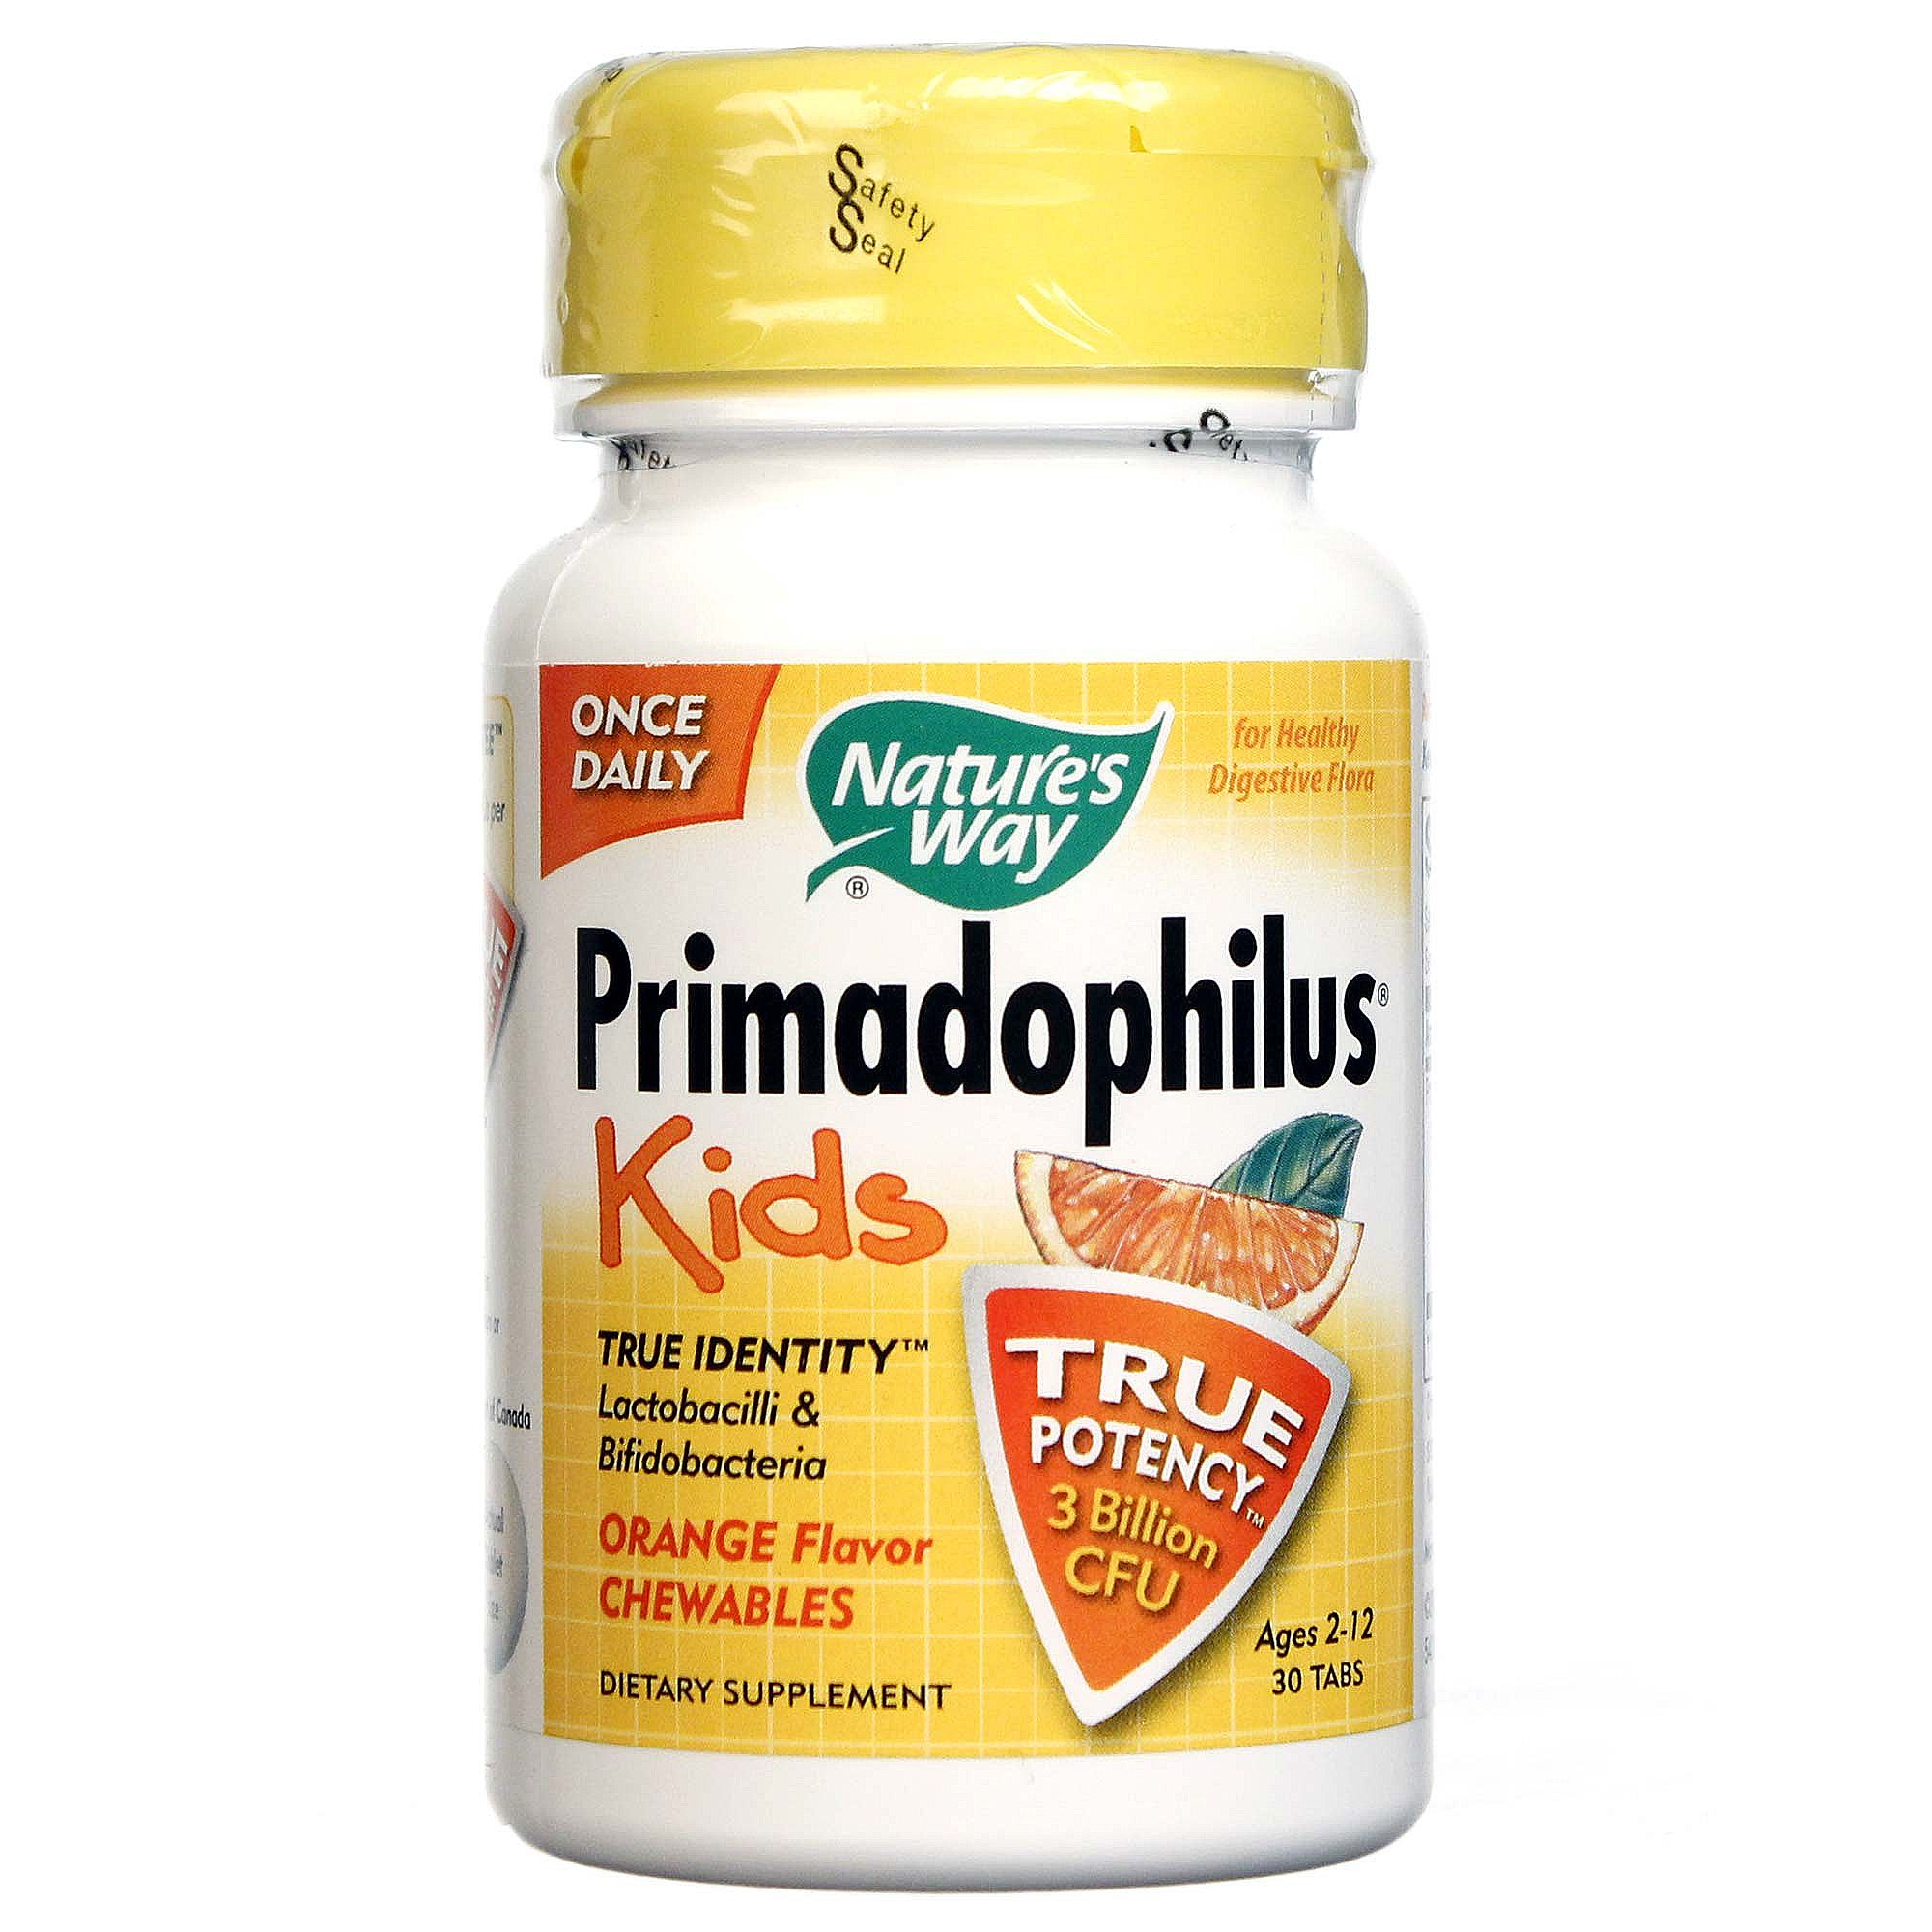 acidophilus premium com with until turmeric life guaranteed garden highest available dp pain curcumin probiotics amazon relief support prebiotics supplement raw billion cfu expiration kids bioperine probiotic of potency joint